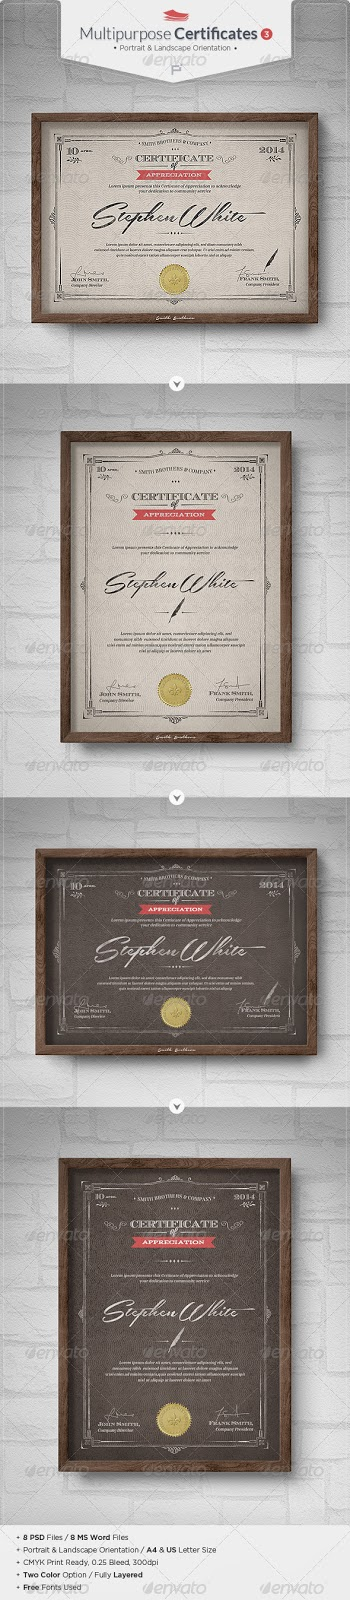 graphicriver.net/item/multipurpose-certificates-bundle/7230729?ref=creapack